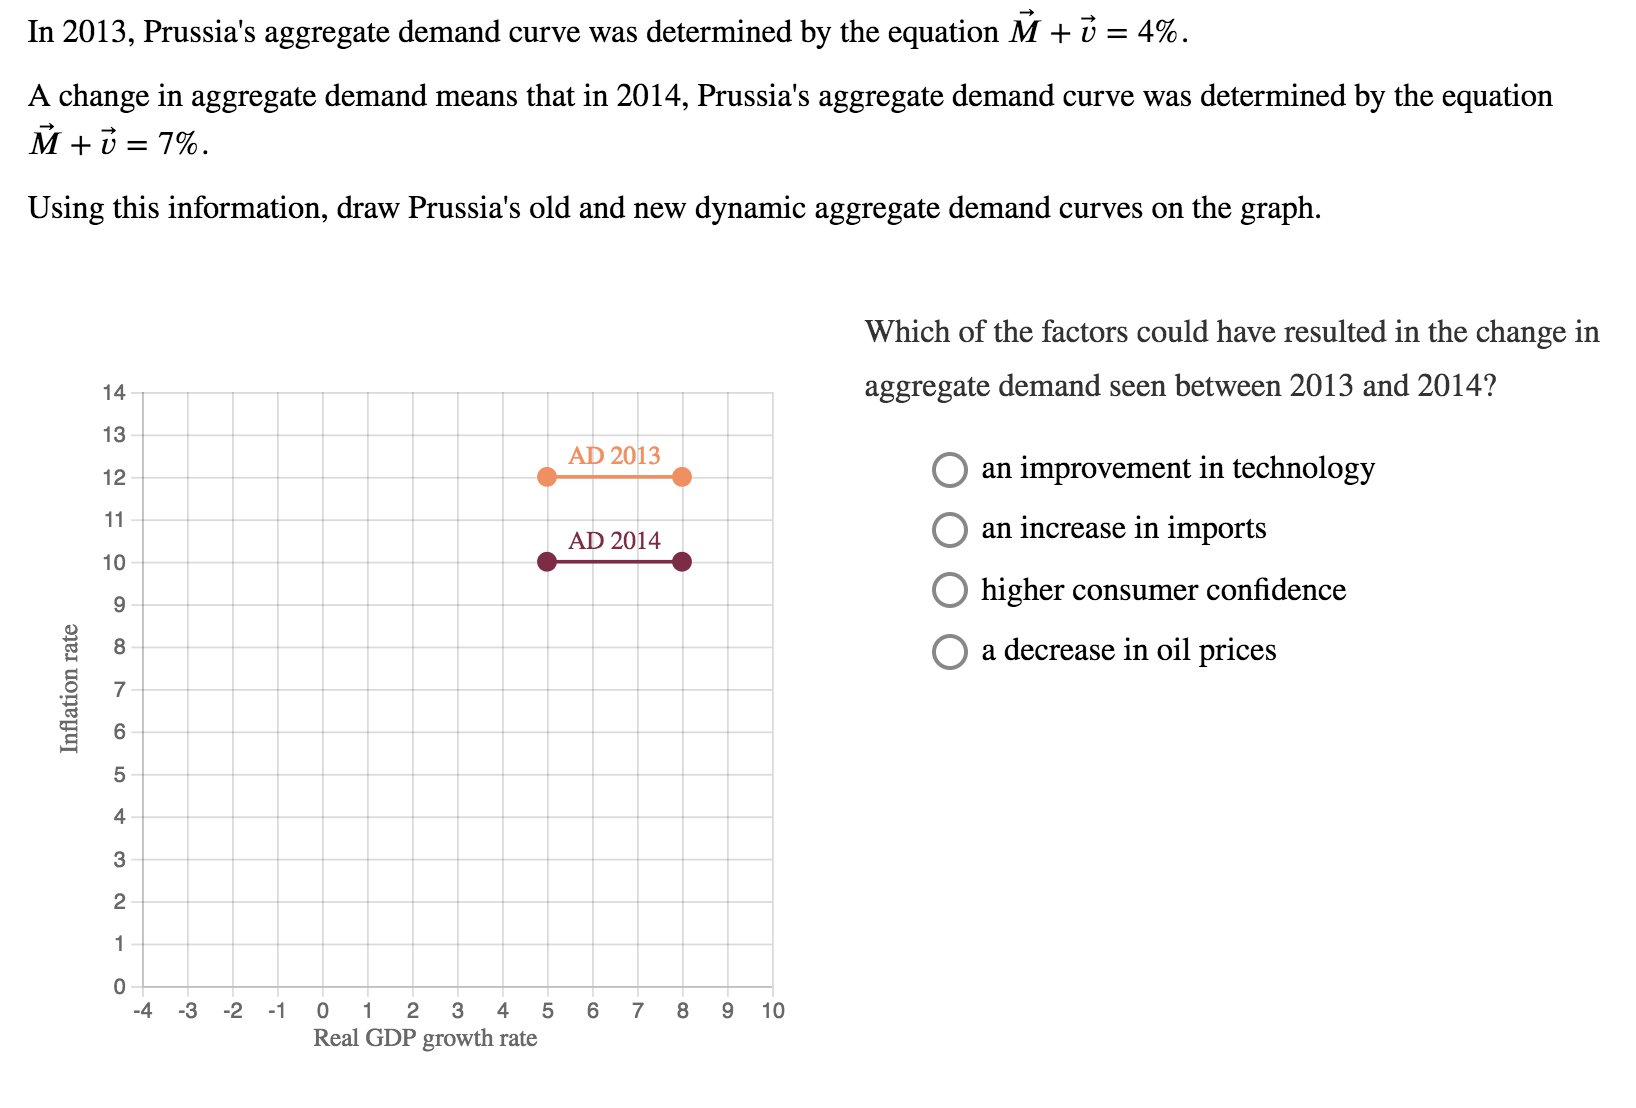 In 2013, Prussia's aggregate demand curve was determined by the equation M + 1-4% A change in aggregate demand means that in 2014, Prussia's aggregate demand curve was determined by the equation Using this information, draw Prussia's old and new dynamic aggregate demand curves on the graph Which of the factors could have resulted in the change irn aggregate demand seen between 2013 and 2014? 13 AD 2013 an improvement in technology O an increase in imports O higher consumer confidence O a decrease in oil prices 12 AD 2014 10 8 5 4 3 2 4 -3 2 1 0 1 2 3 4 5 6 78 9 10 Real GDP growth rate